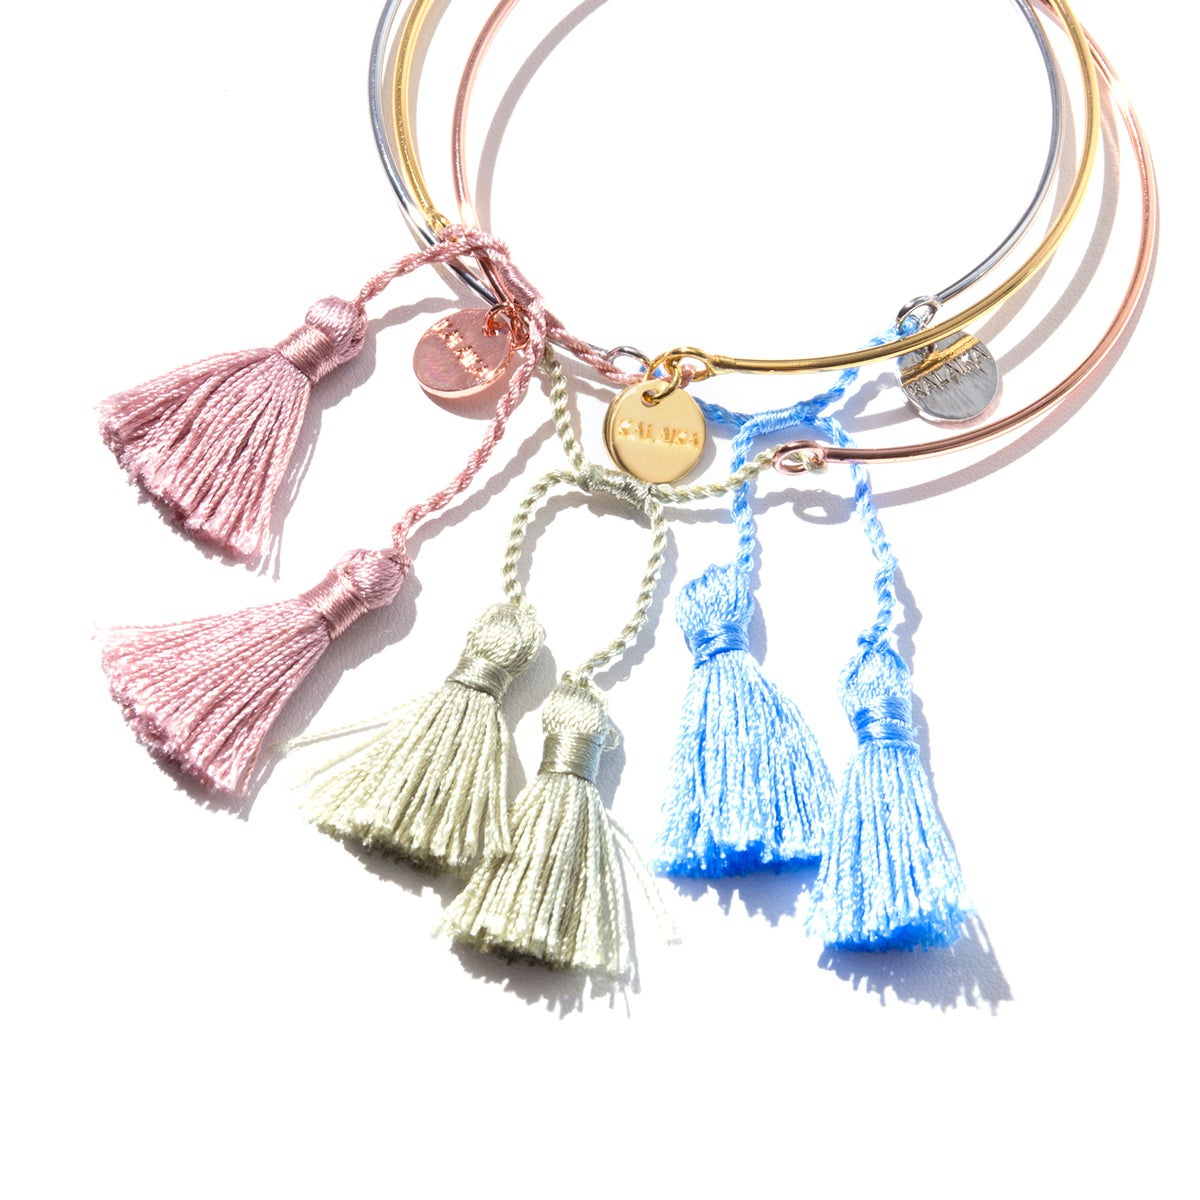 Image of TASSEL UP YOUR LIFE<br>GOLD ARMREIF | CUFF